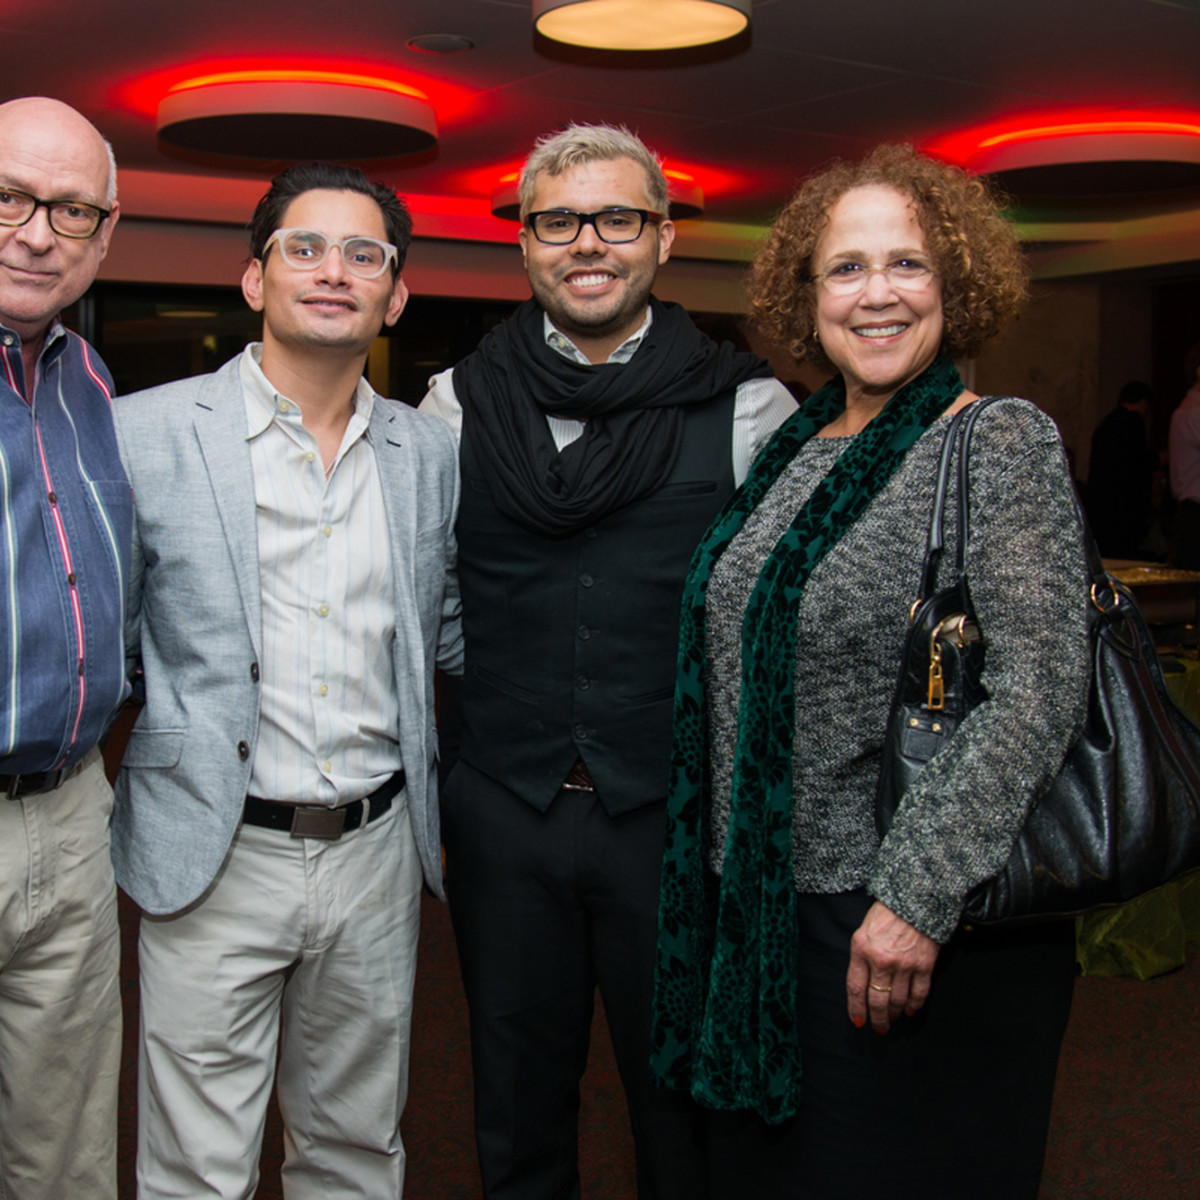 News, Alley Theatre Christmas Tree party, Nov. 2015 Bruce Coy, Paul Martinez, Alex Lopez, Jasmine Walker;